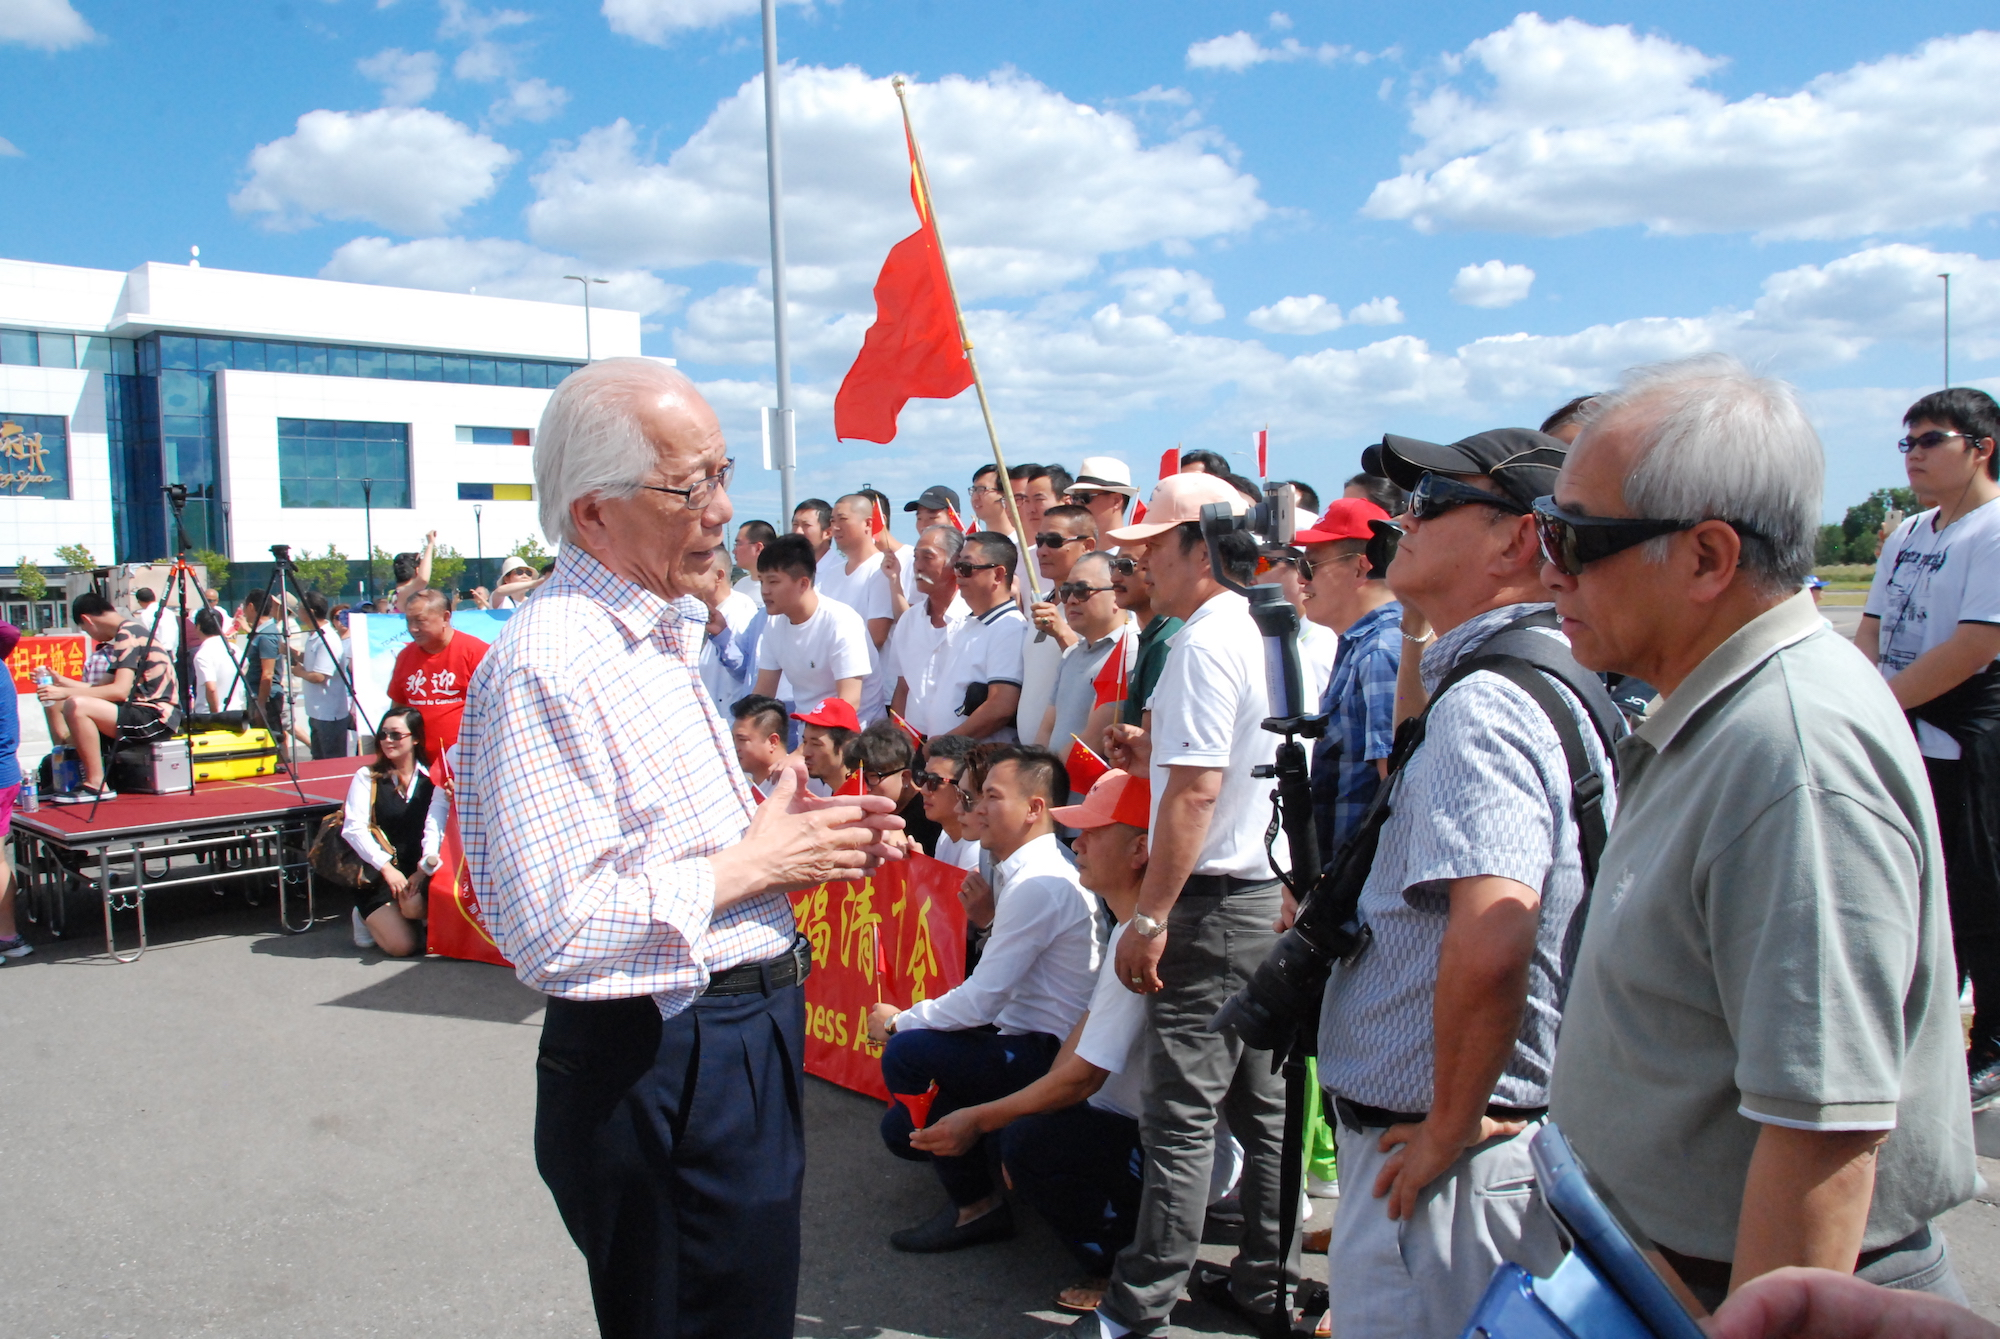 Several Canadian Politicians, Pro-Beijing Groups Attend Celebrations of Communist China's Founding Despite Beijing-Ottawa Tensions